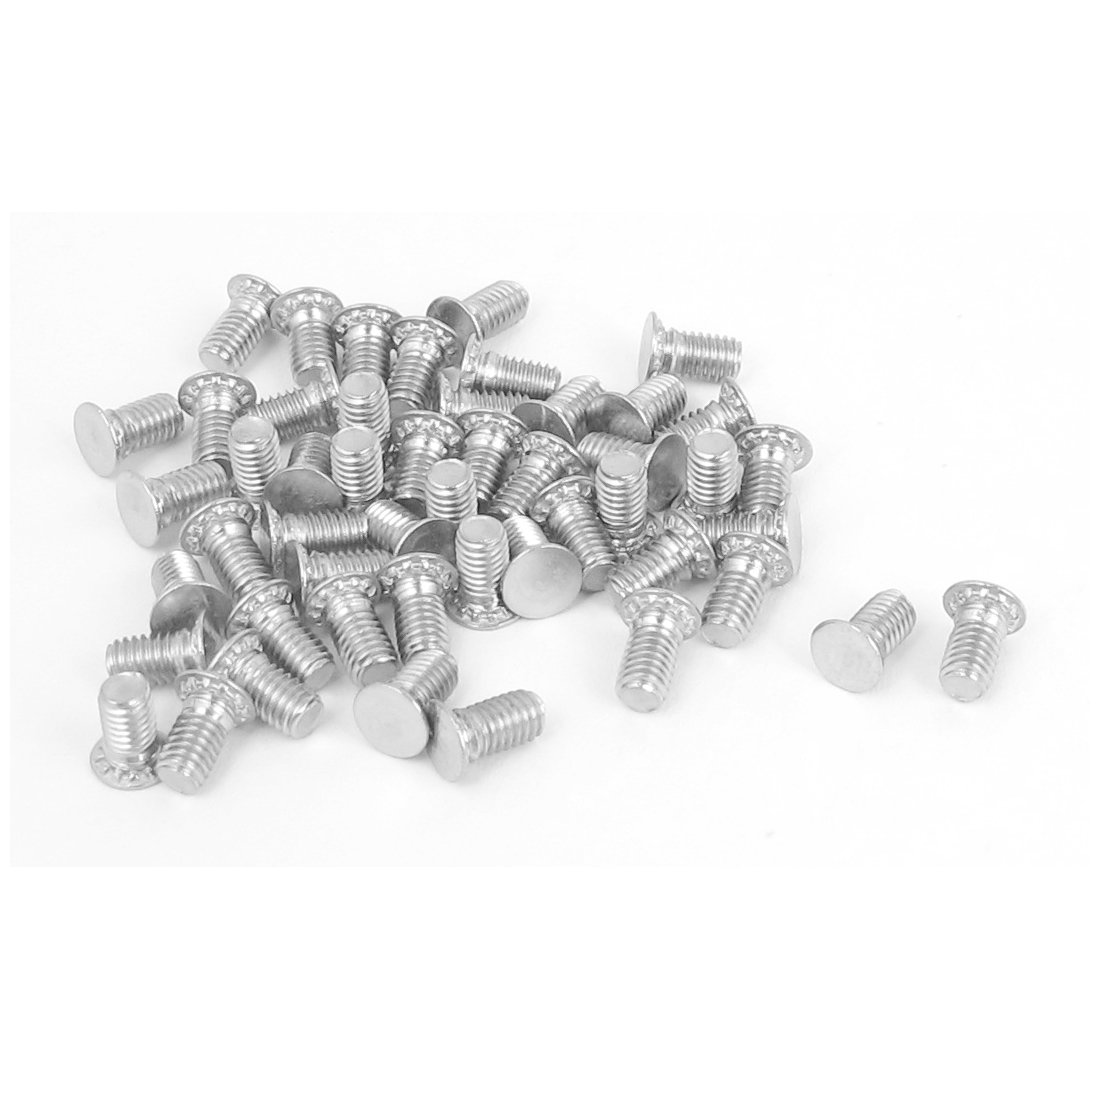 Uxcell a15101500ux0541 Self Clinching Studs M3x6mm Flush head Stainless steel Self Clinching Threaded Studs 50Pcs